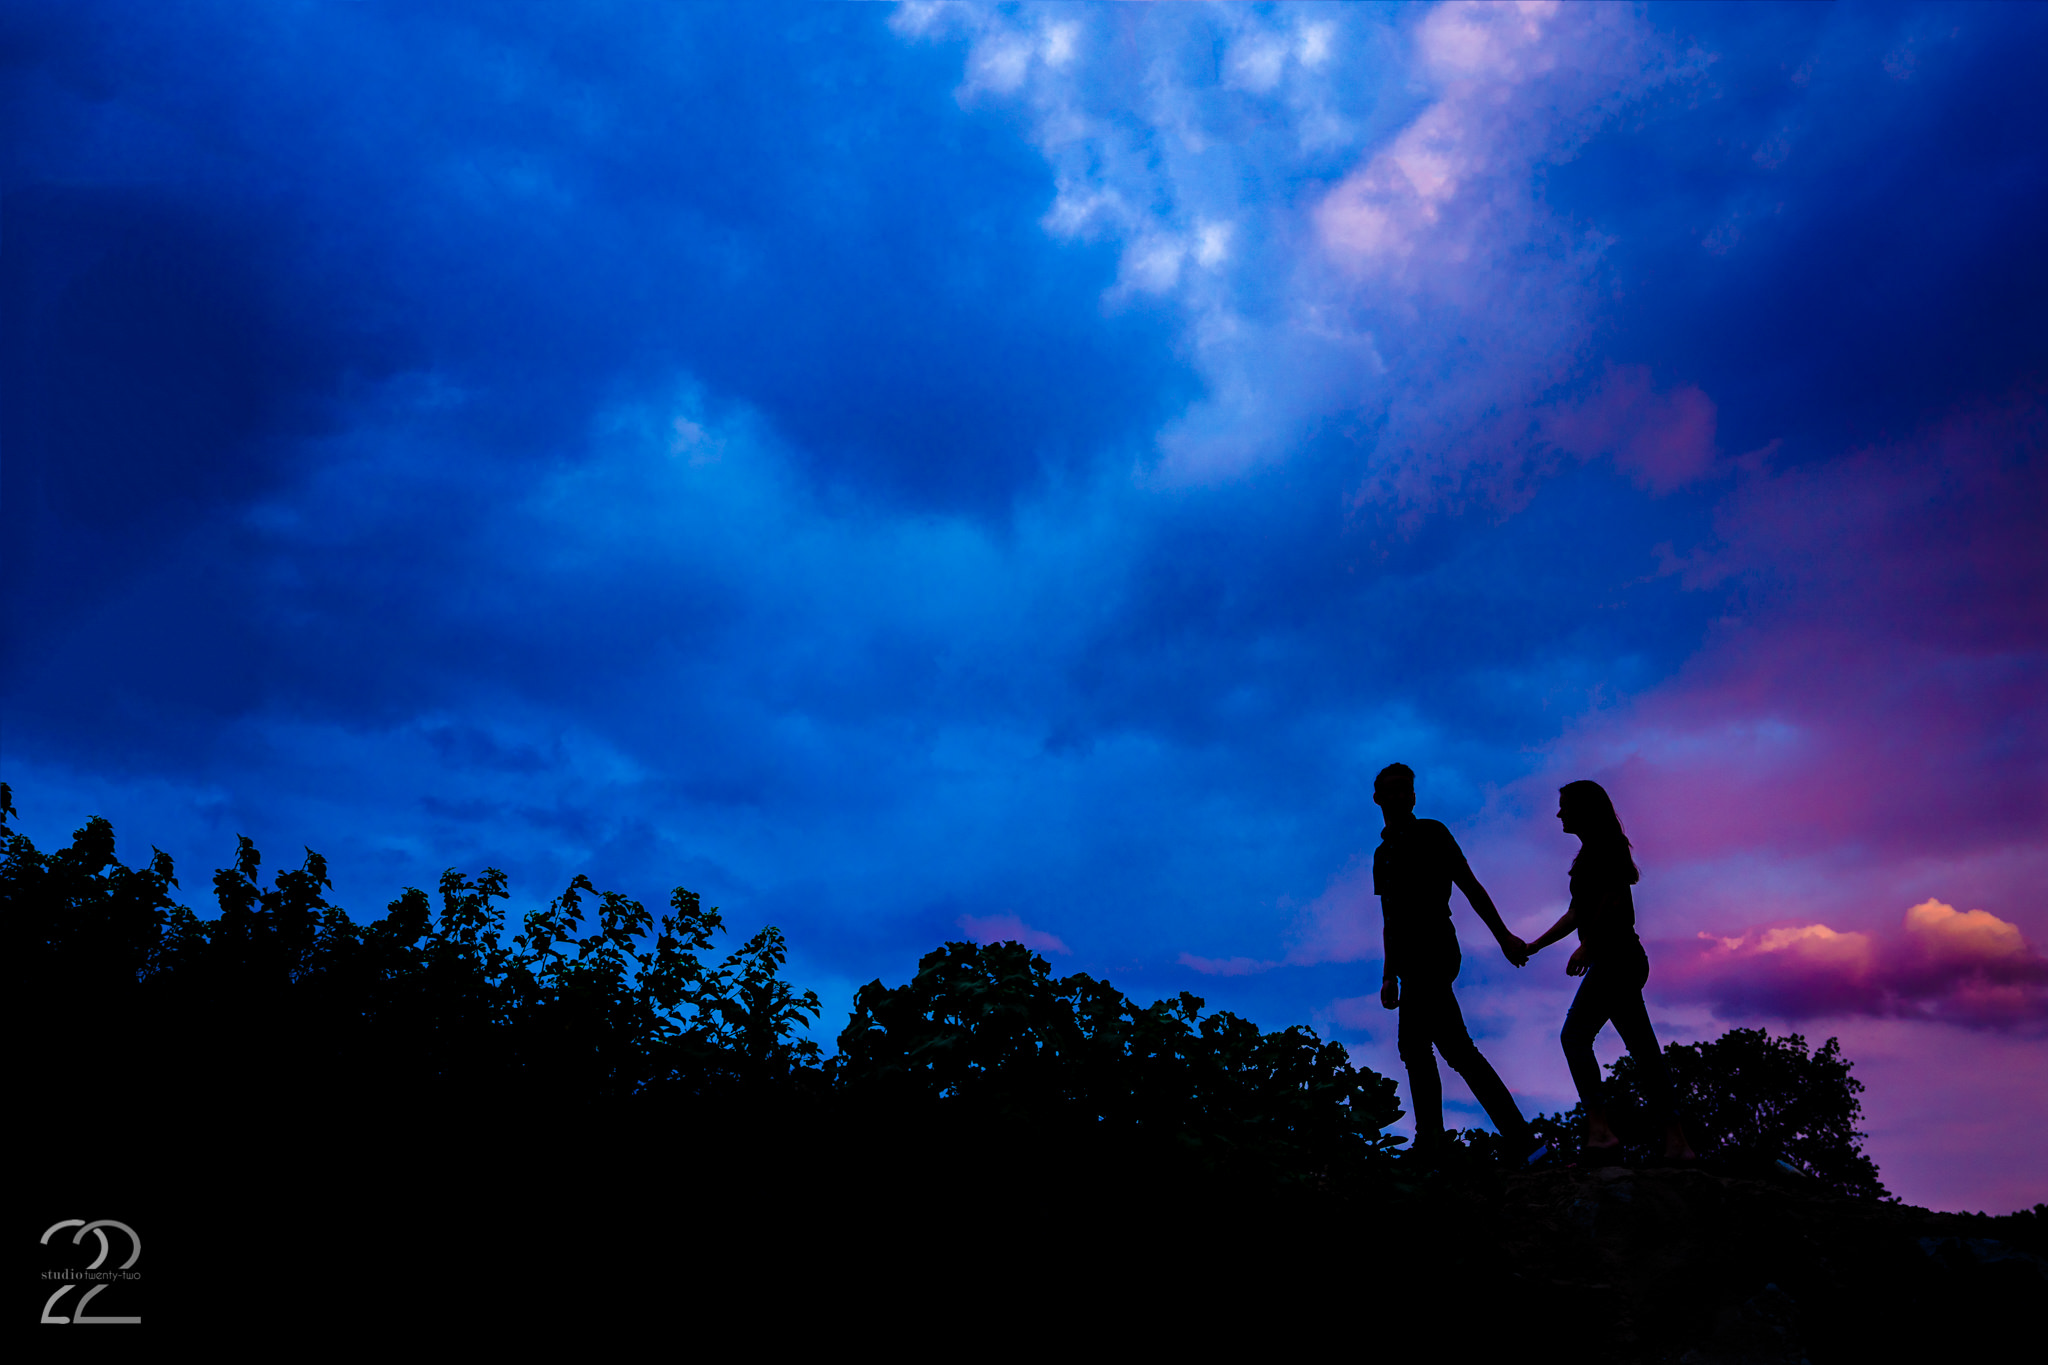 Creating an image that illicit and emotion is Studio 22's ultimate goal. We were lucky enough for this gorgeous sky to appear at Northwestern University during Tim and Michelle's engagement photos.